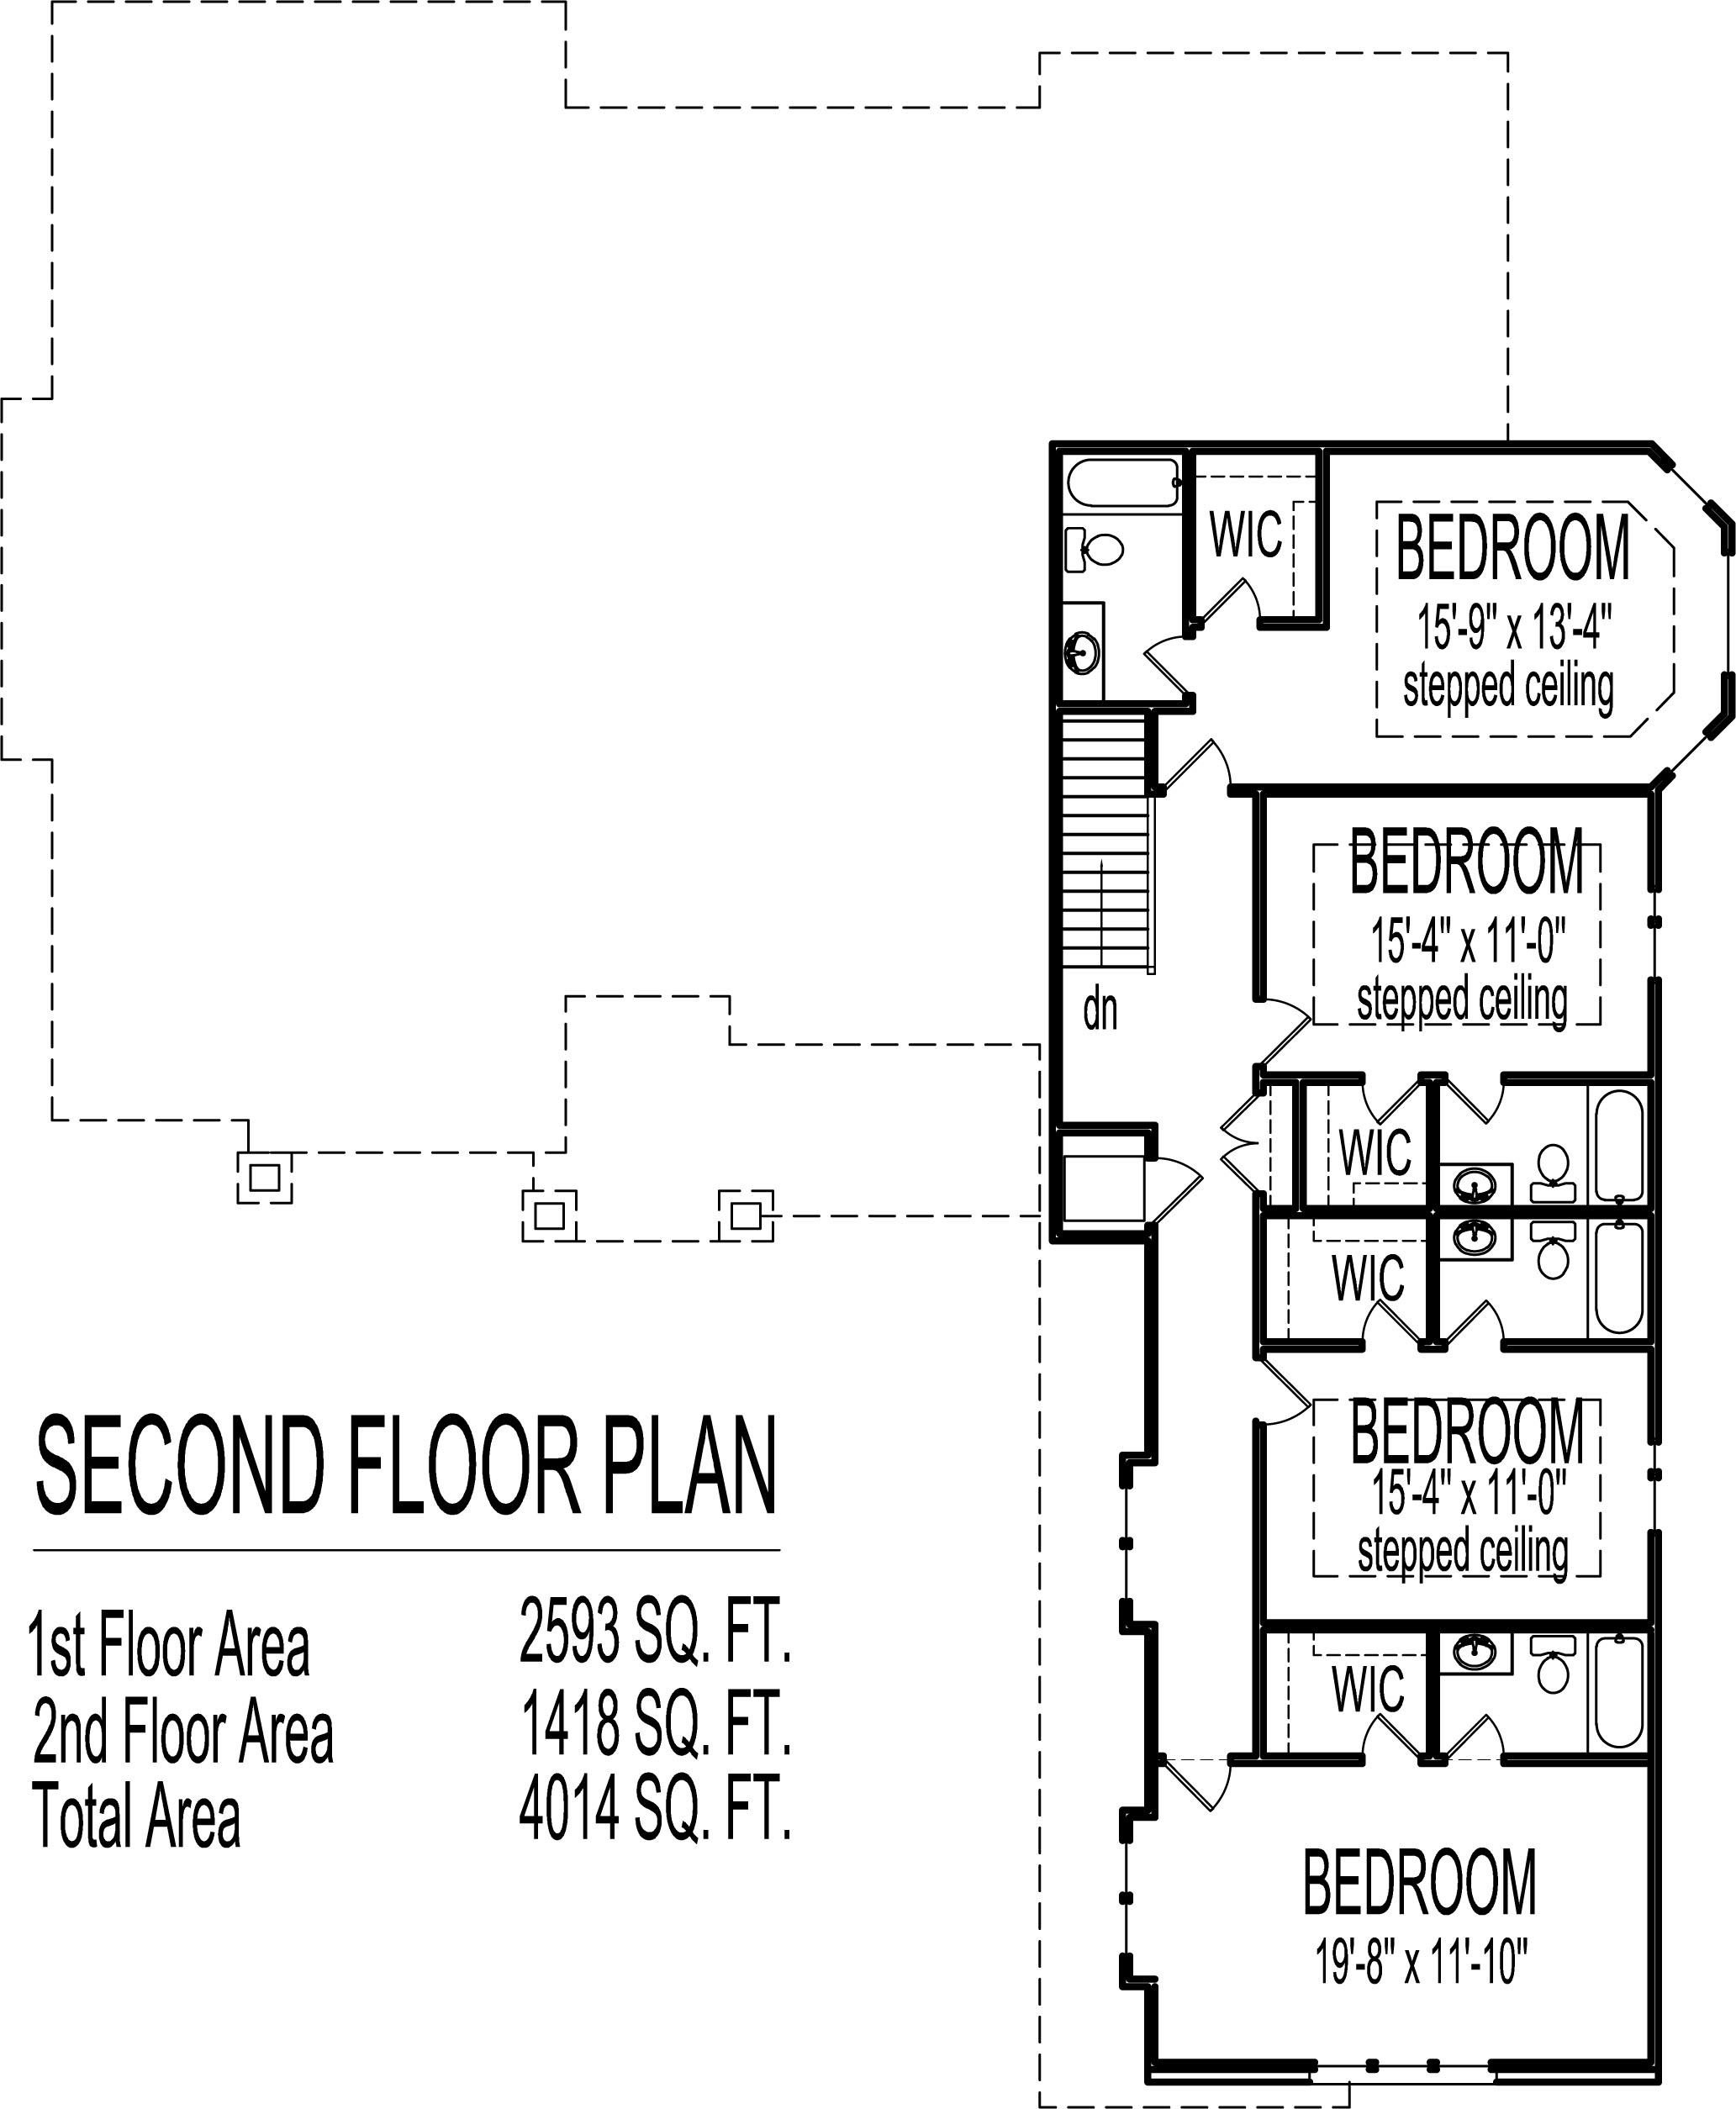 2 story house floor plans 6 bedroom craftsman home design for 6 bedroom 6 bathroom house plans